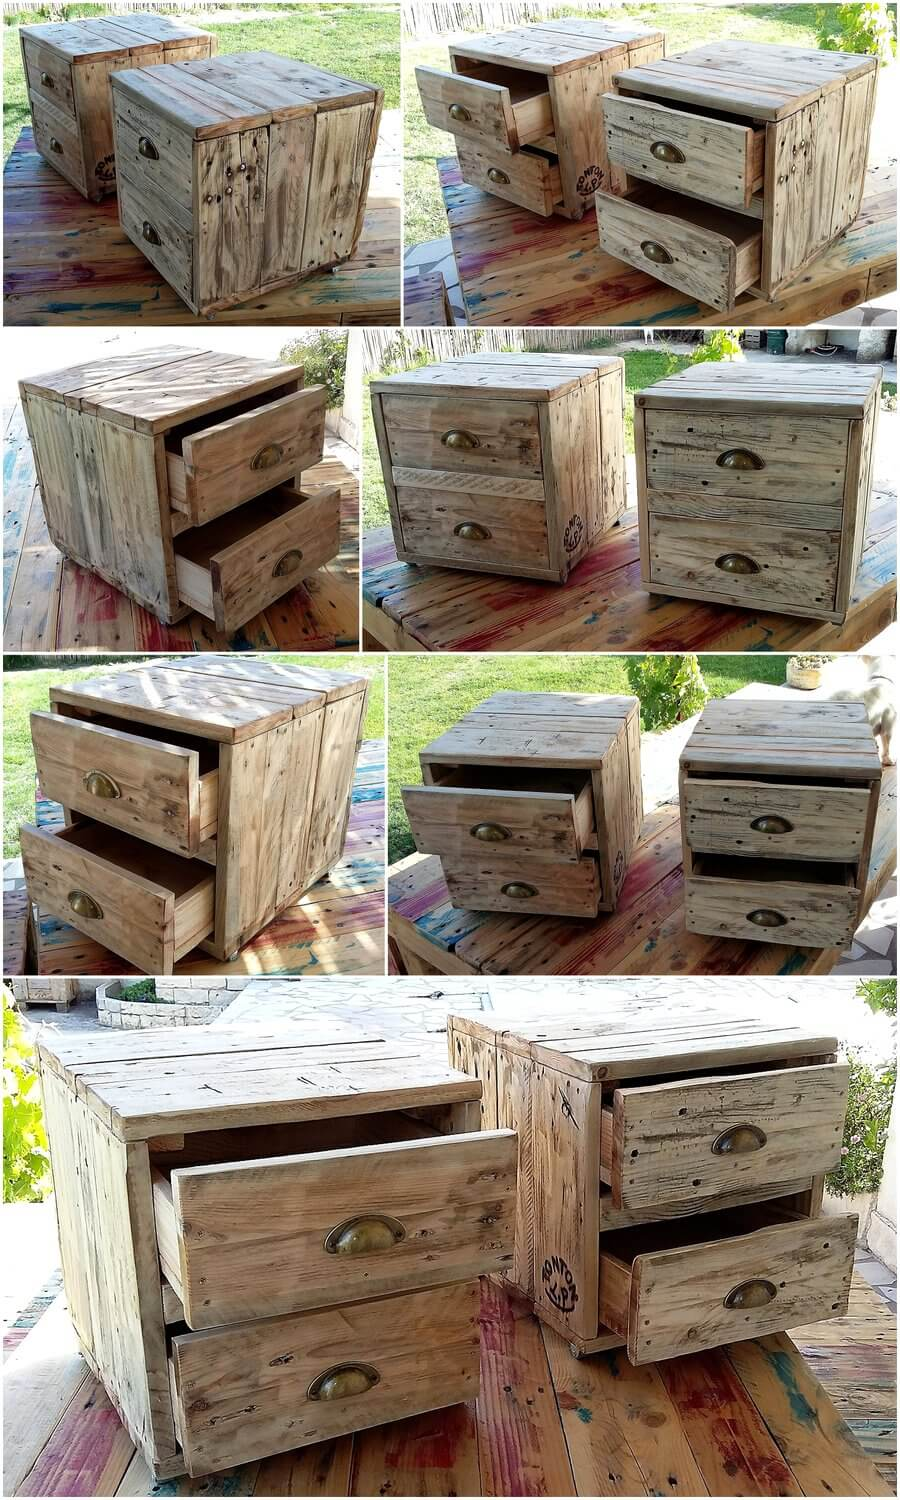 Rustic Night Tables Out of Recycled Wood Pallets